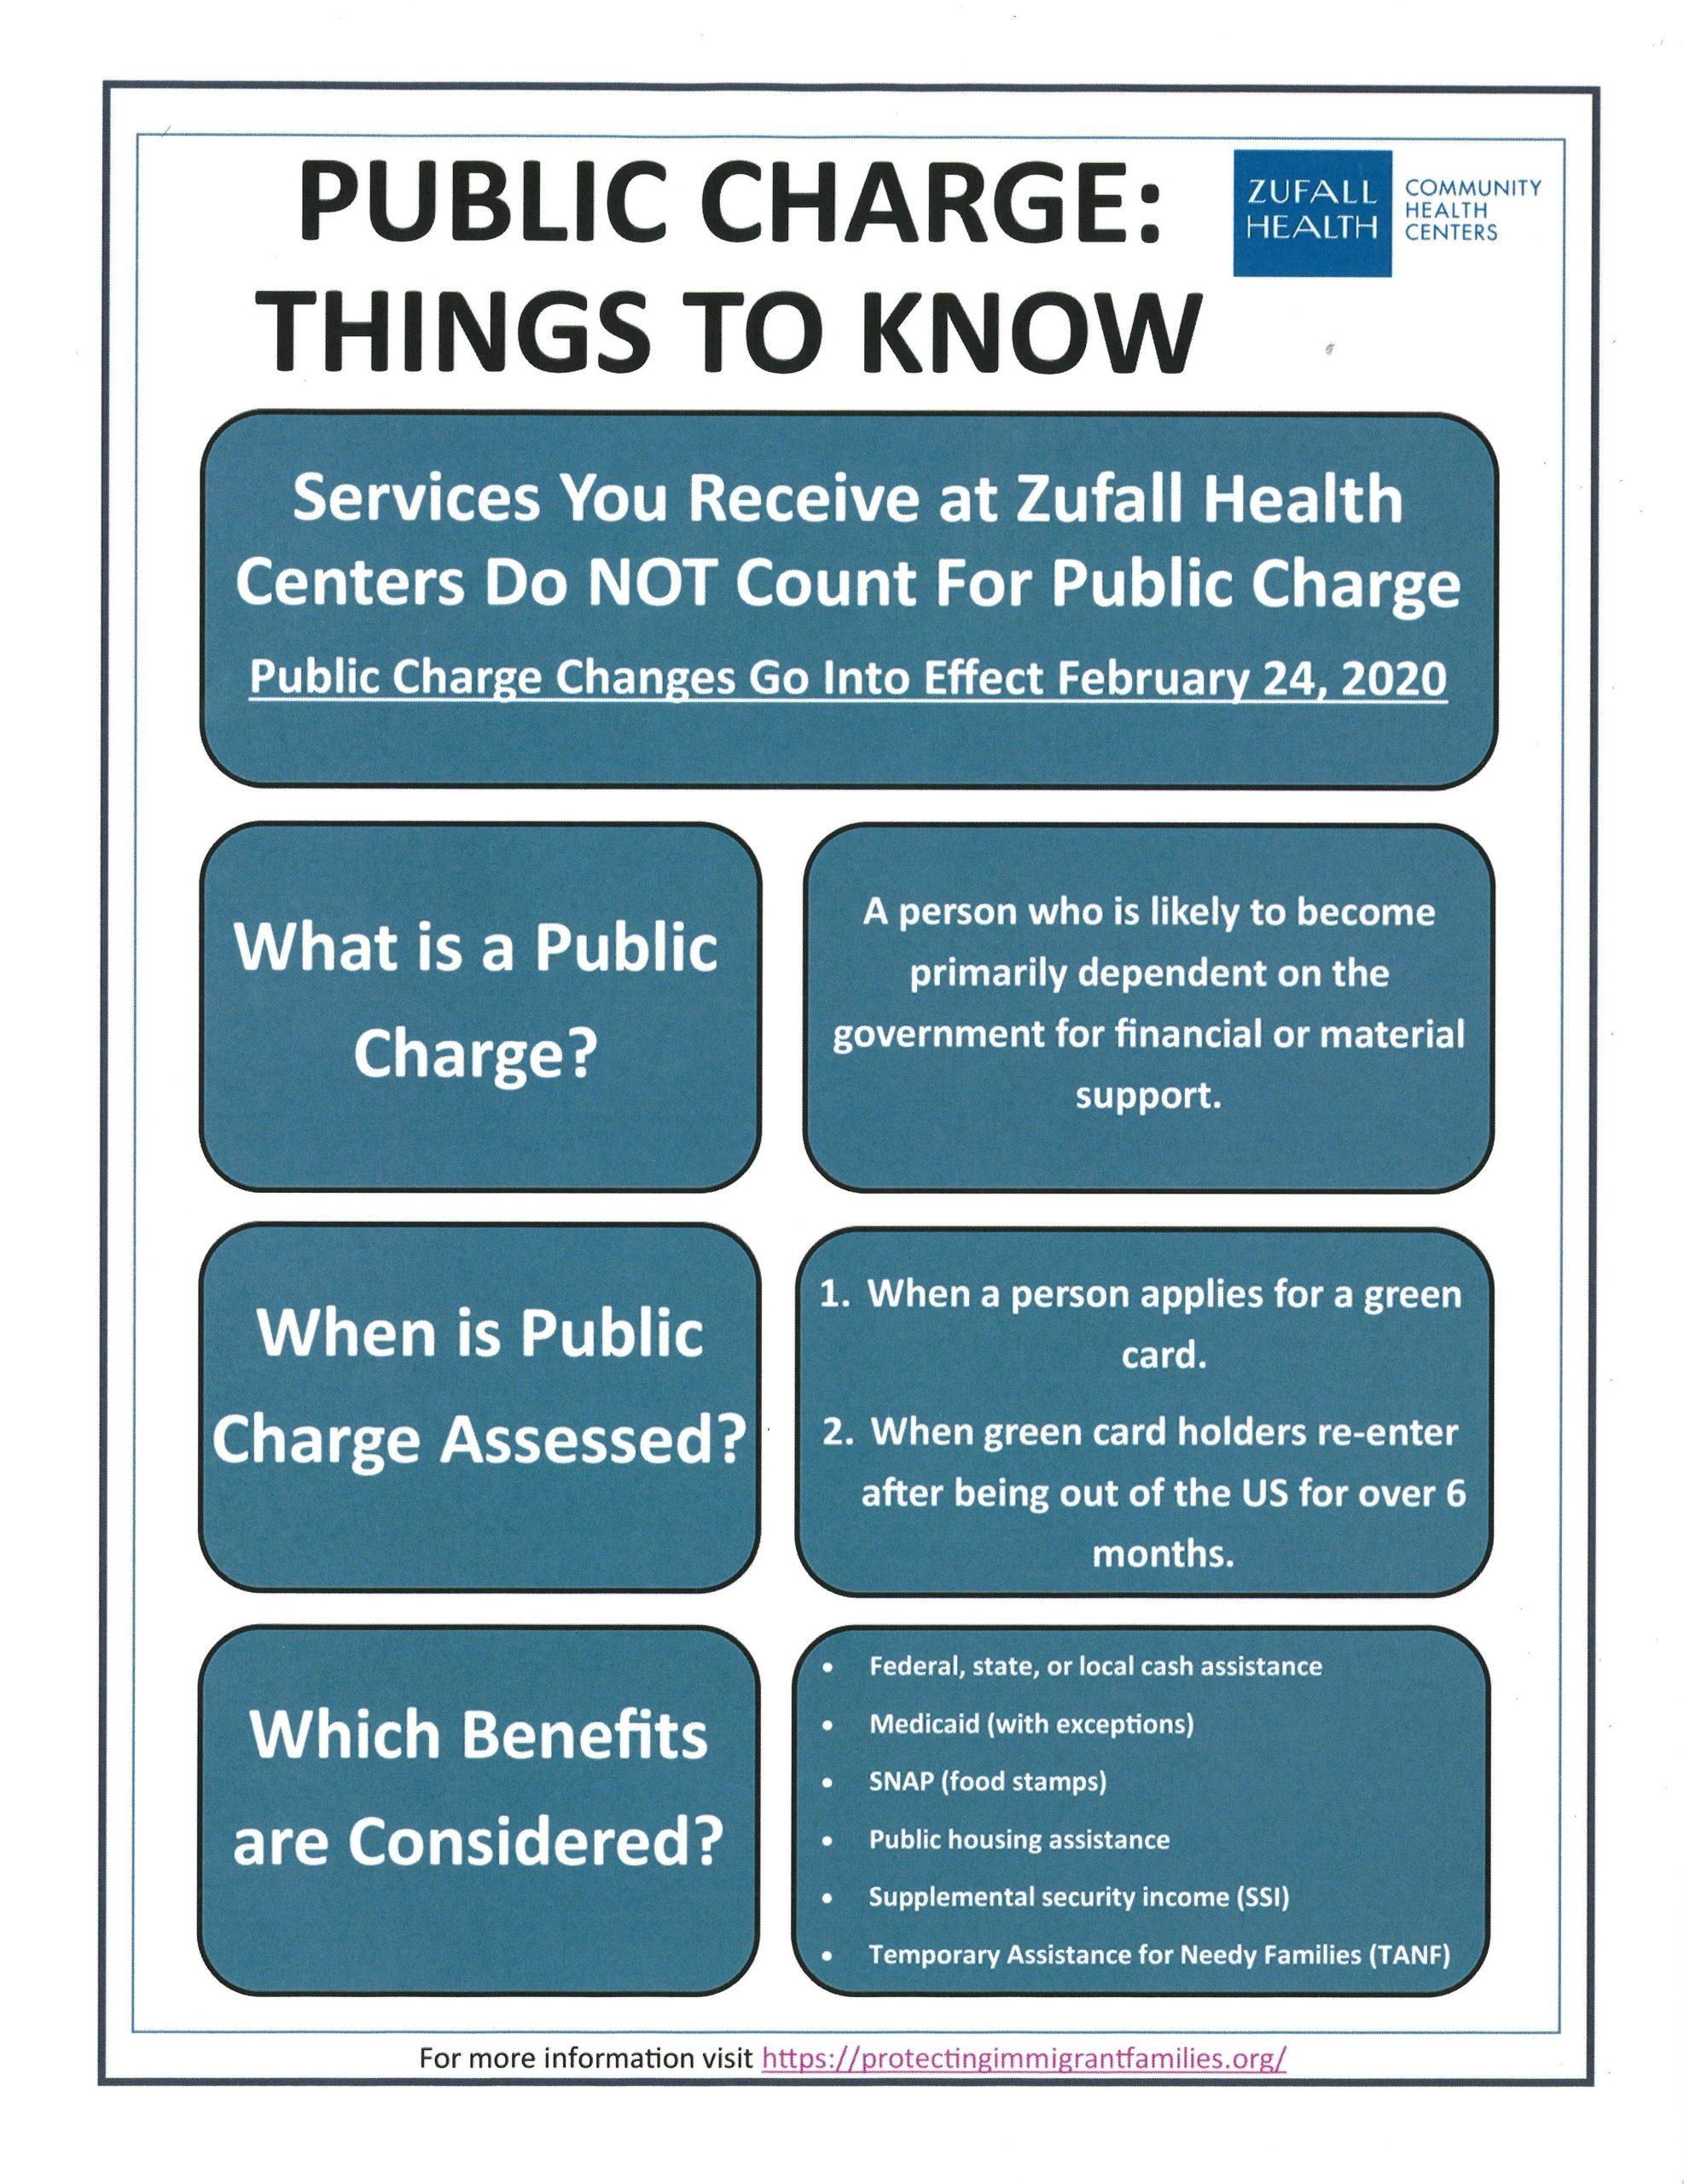 A flyer about things to know about Public Charge changes as of February 24, 2020.